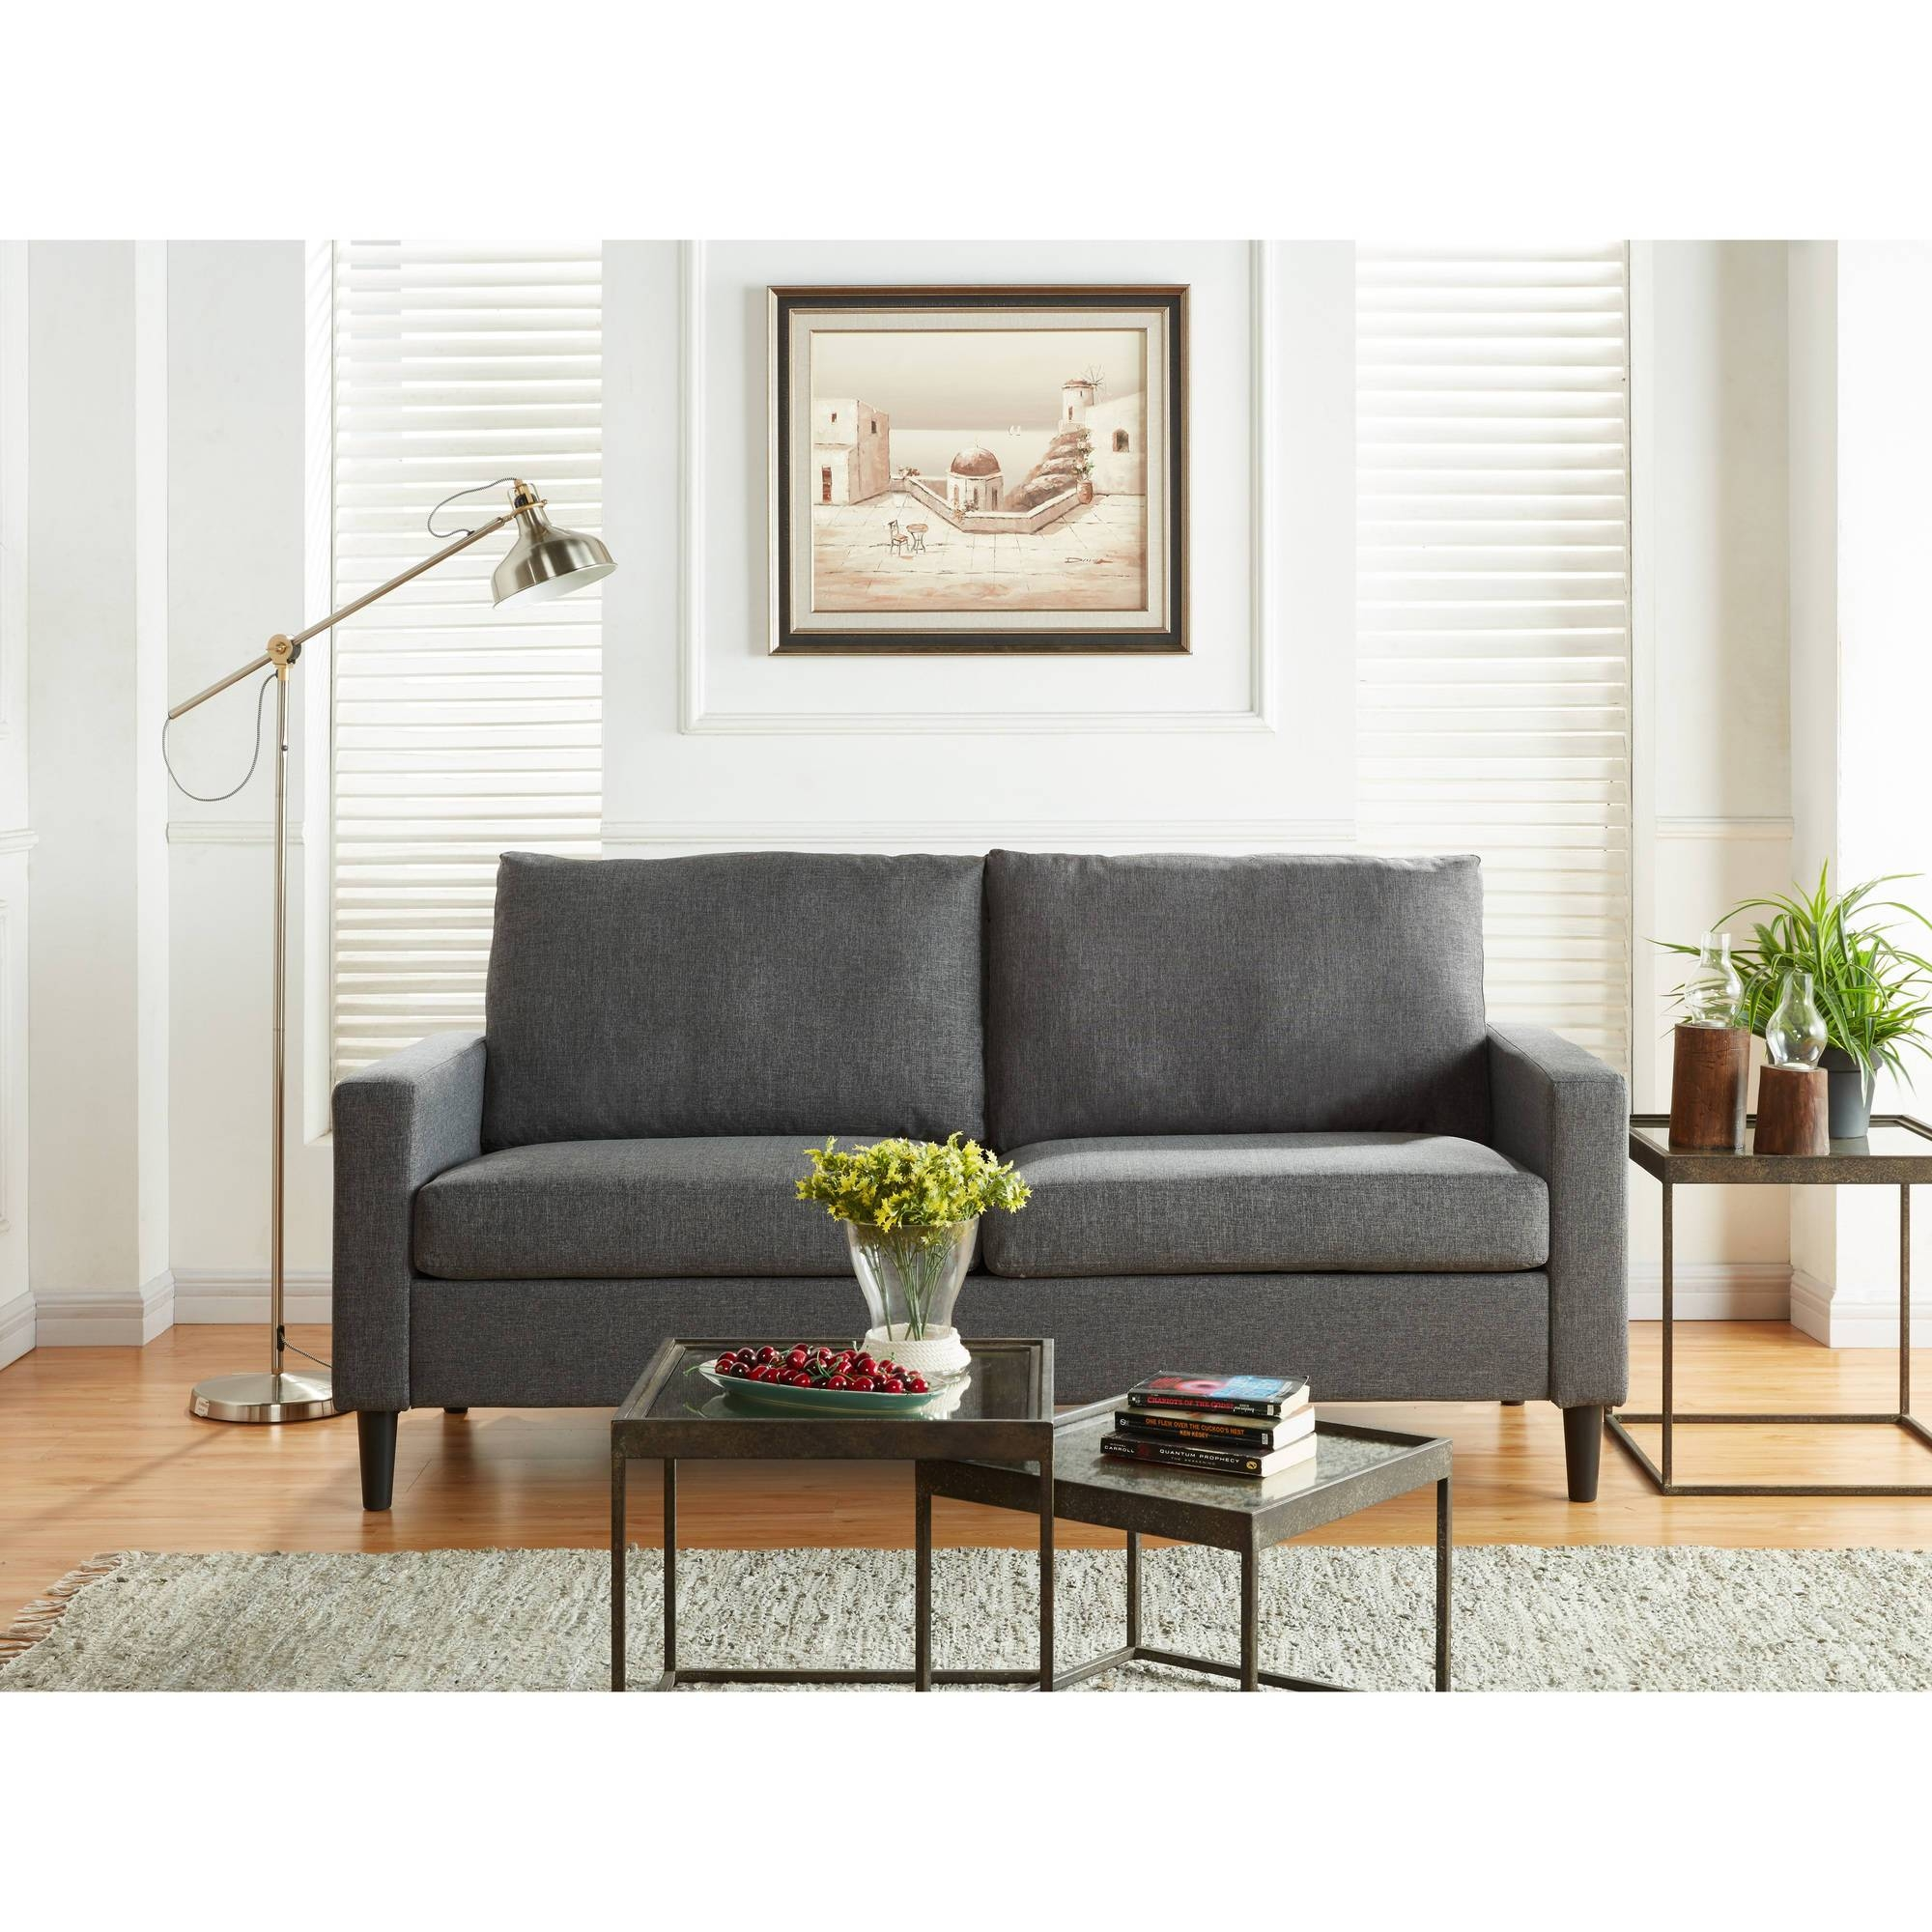 Sofas Center : Grey Microfiber Sectional Sofa Gray Sofagray Couch in Wide Sectional Sofa (Image 25 of 25)